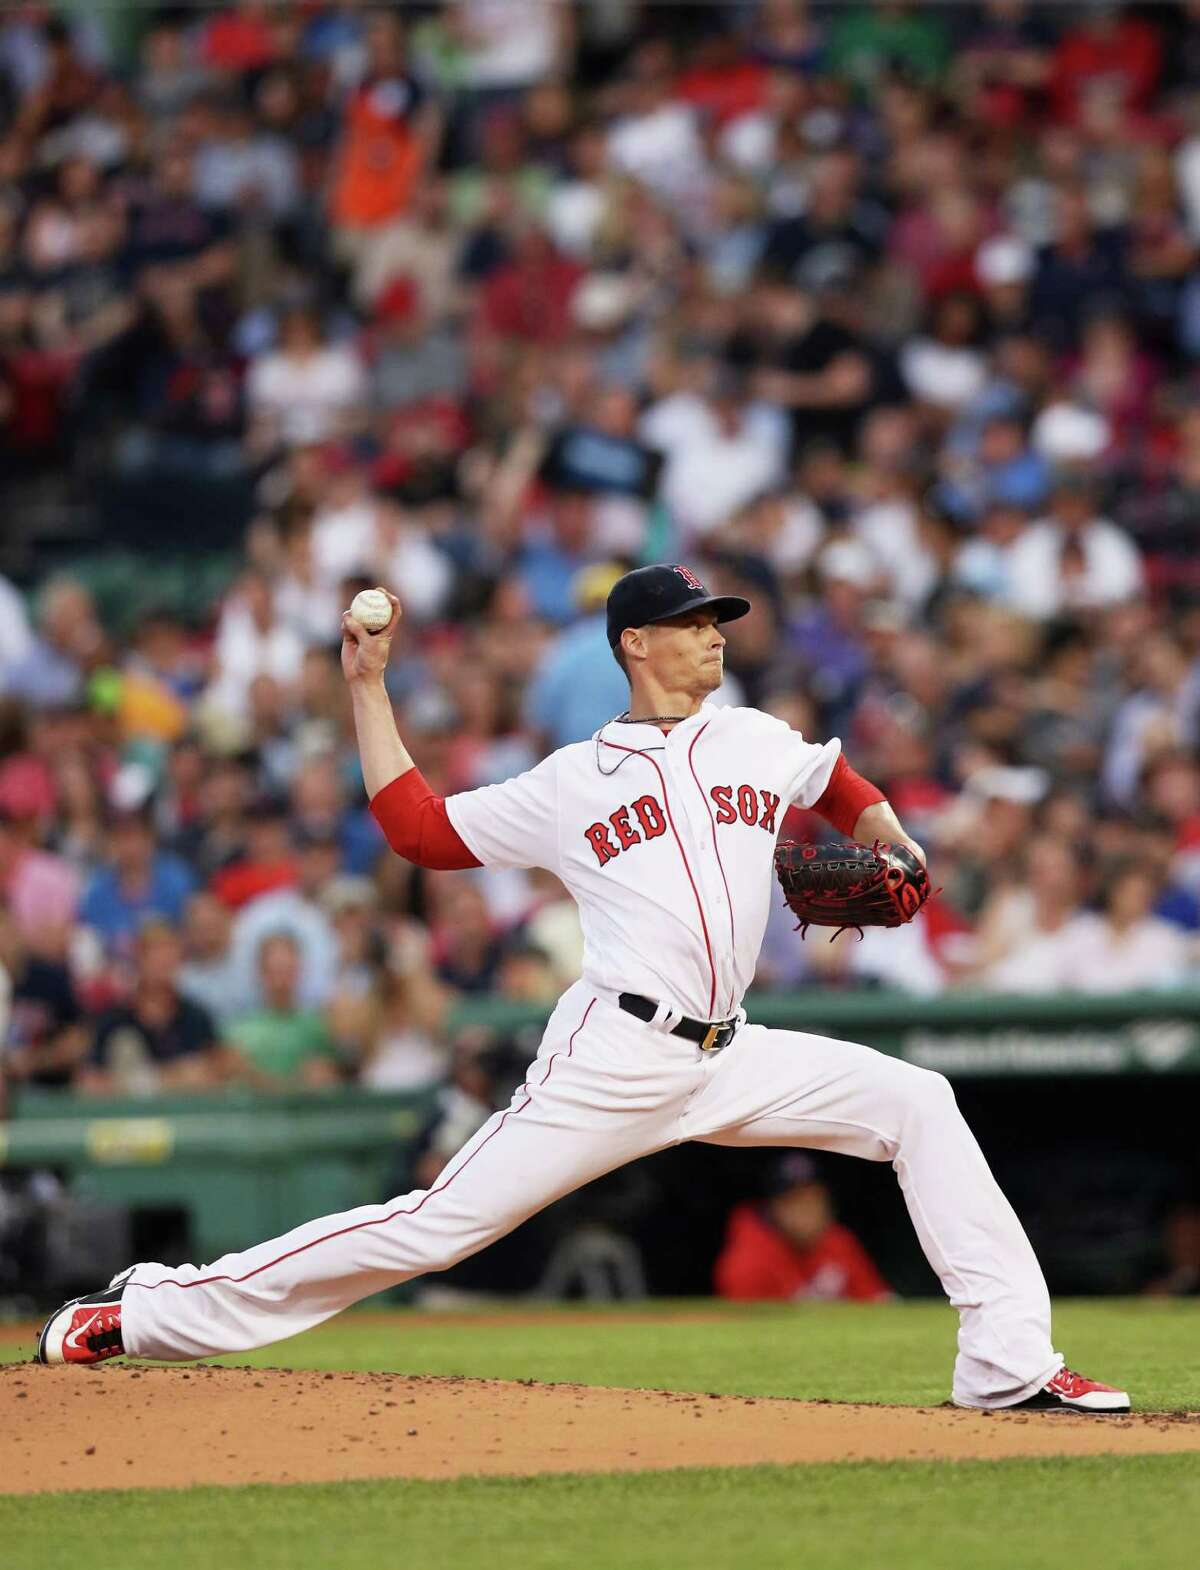 BOSTON, MA - MAY 26: Clay Buchholz #11 of the Boston Red Sox pitches against the Colorado Rockies during the fourth inning at Fenway Park on May 26, 2016 in Boston, Massachusetts. (Photo by Maddie Meyer/Getty Images) ORG XMIT: 607678277